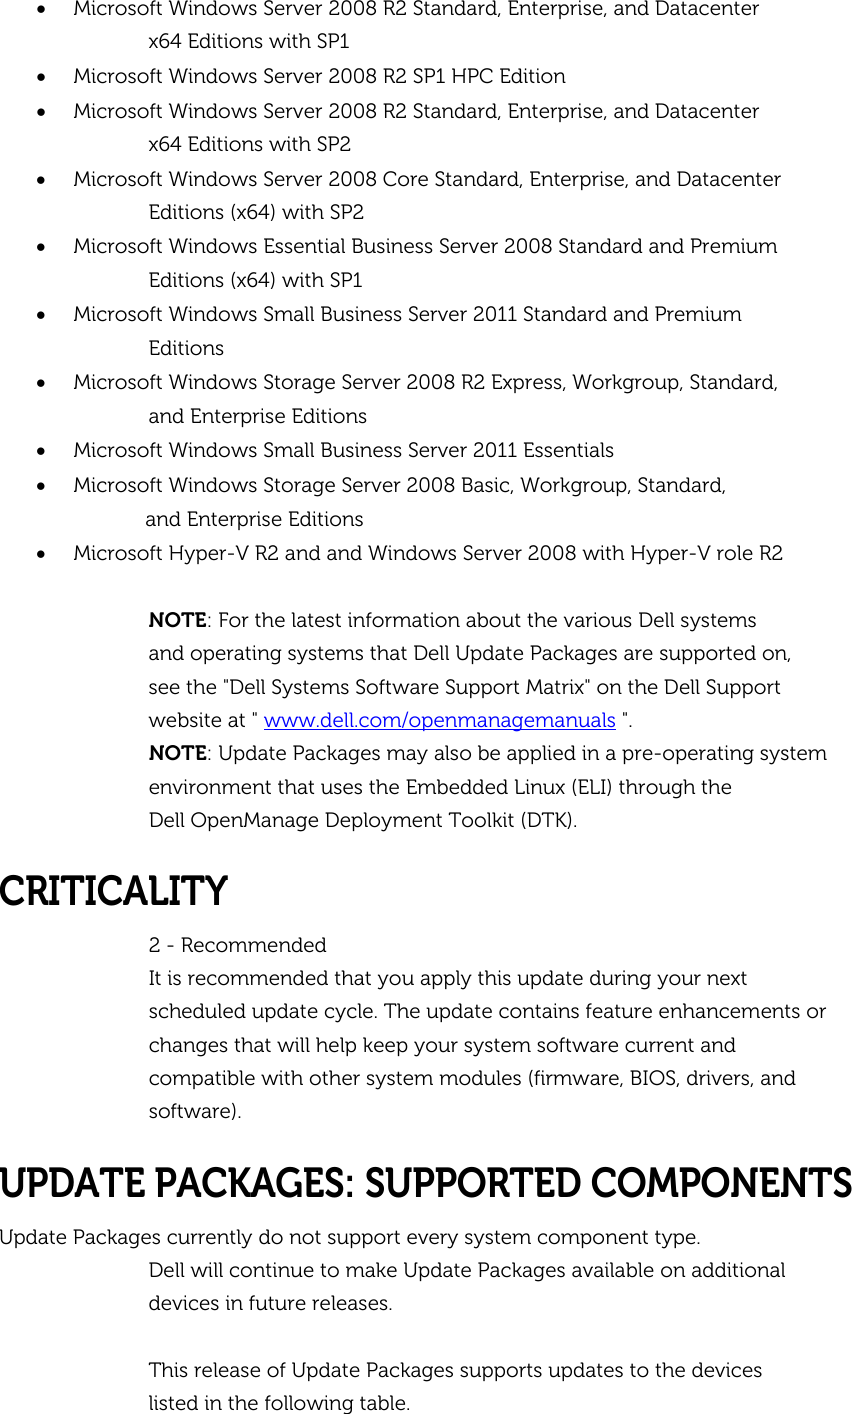 Dell Update Packages Version 7 3 Owners Manual For Microsoft